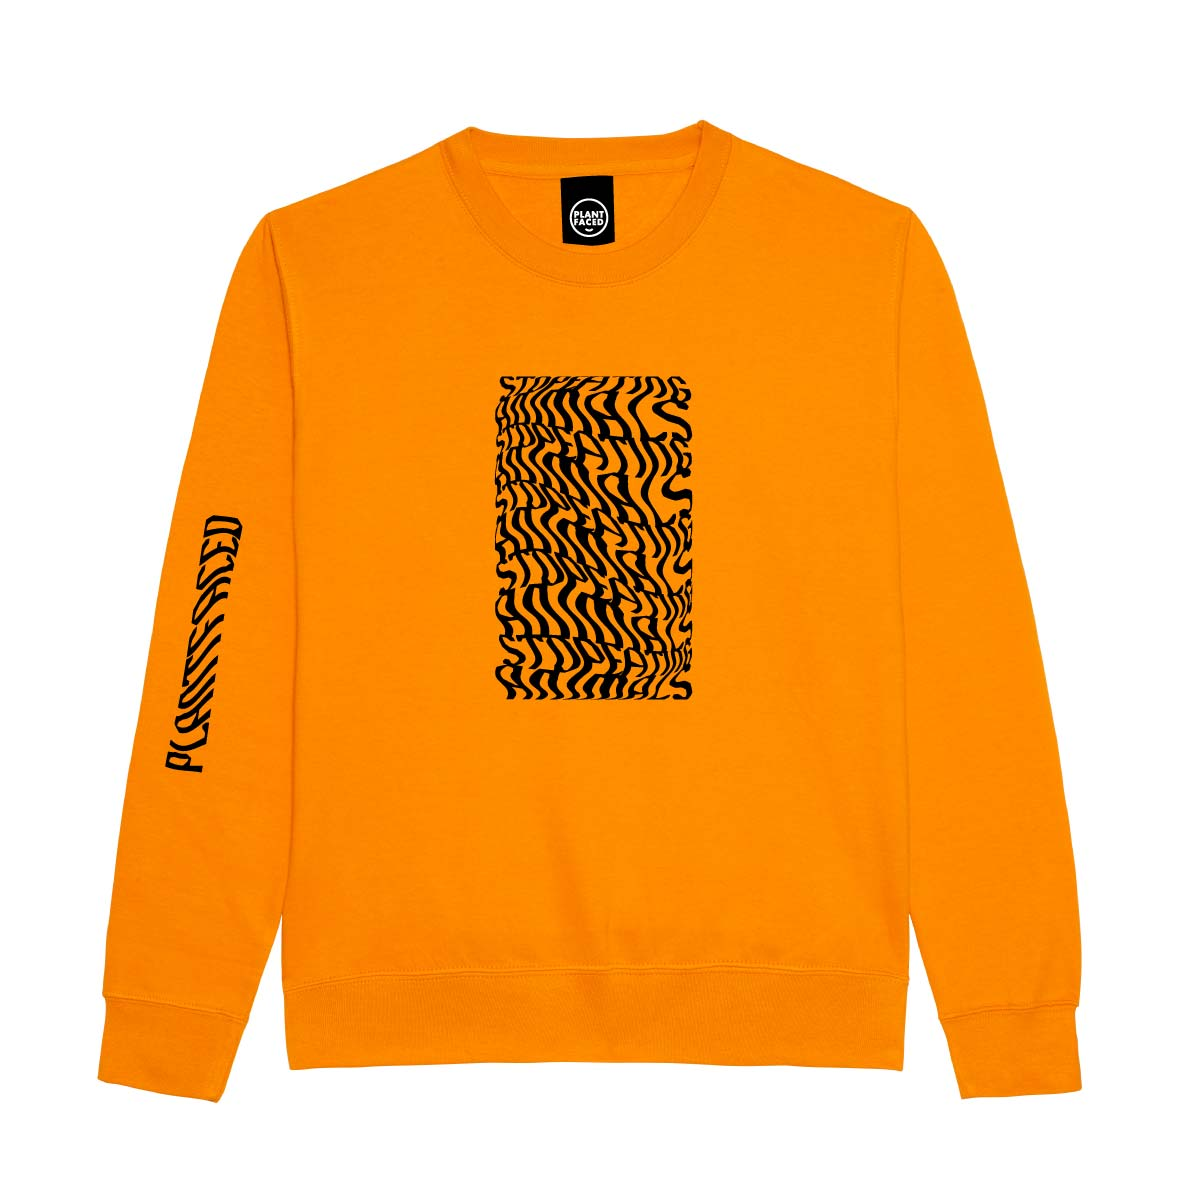 Illusions Sweater - Stop Eating Animals - Alarm Orange